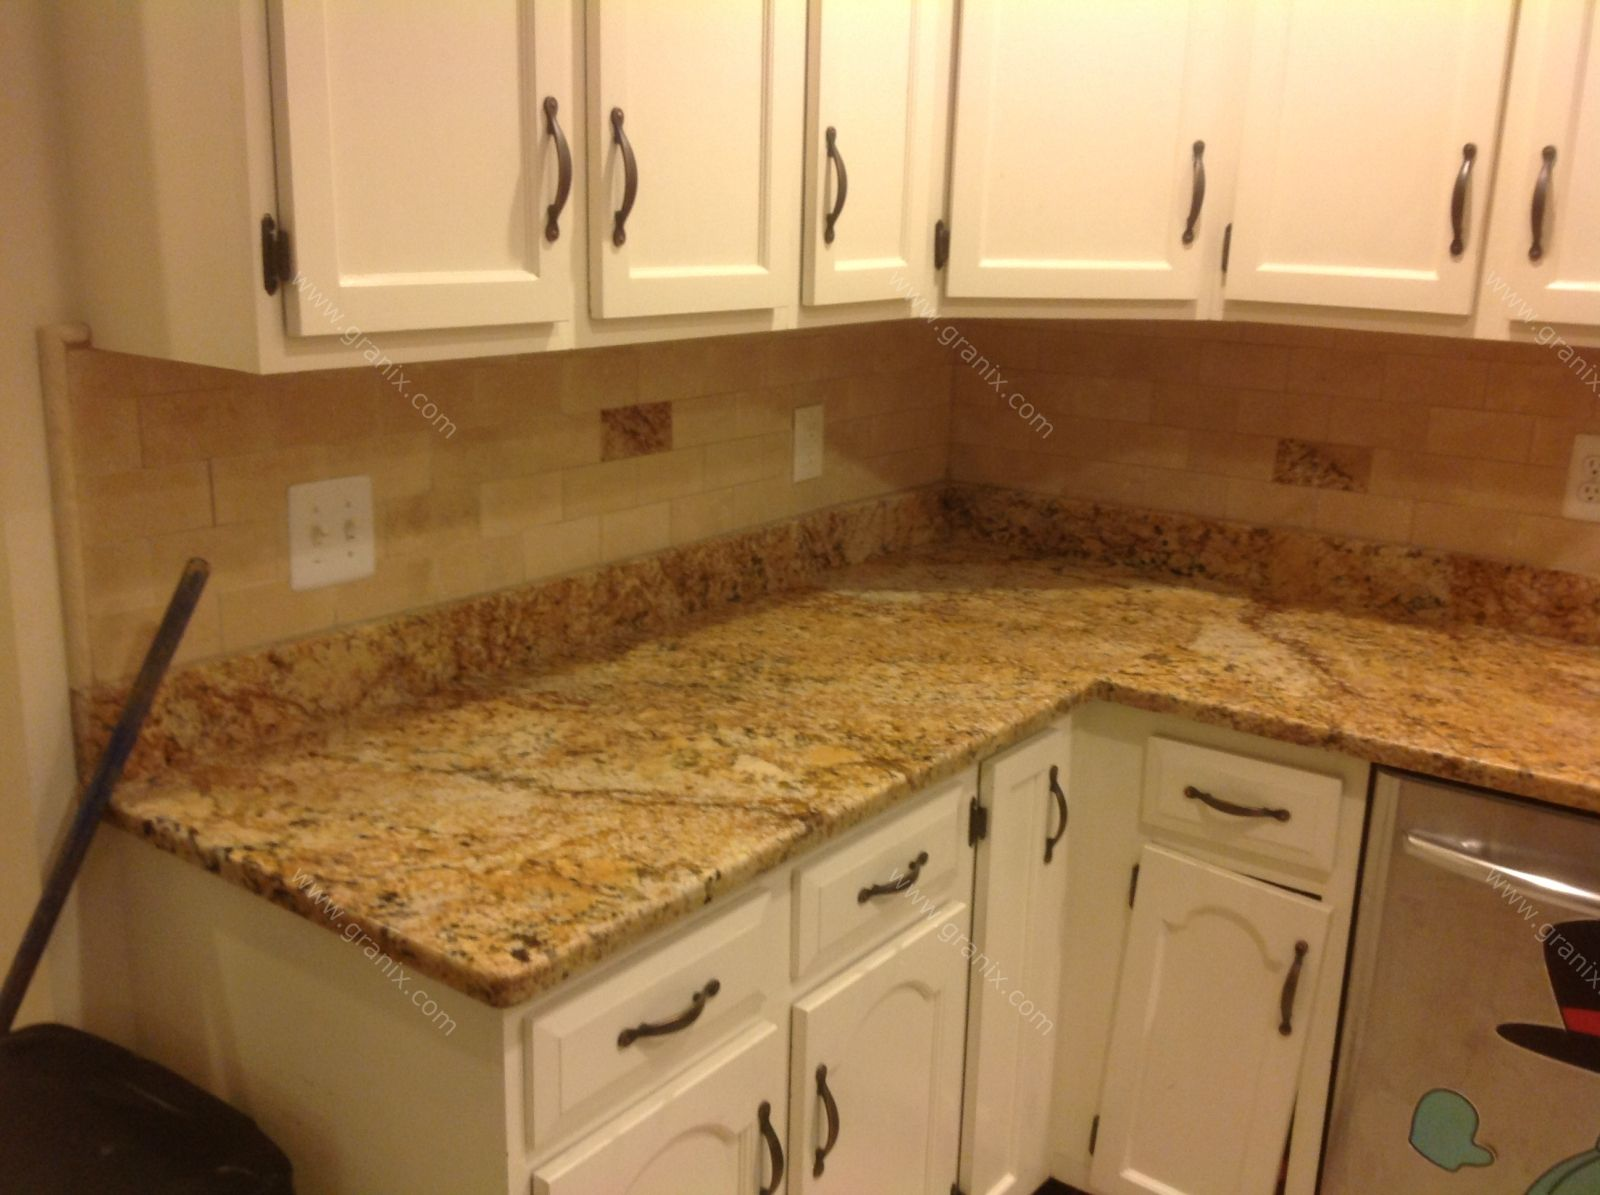 Backsplash Ideas For Granite Countertops Leave A Reply Cancel Reply Kitchen Inspiration